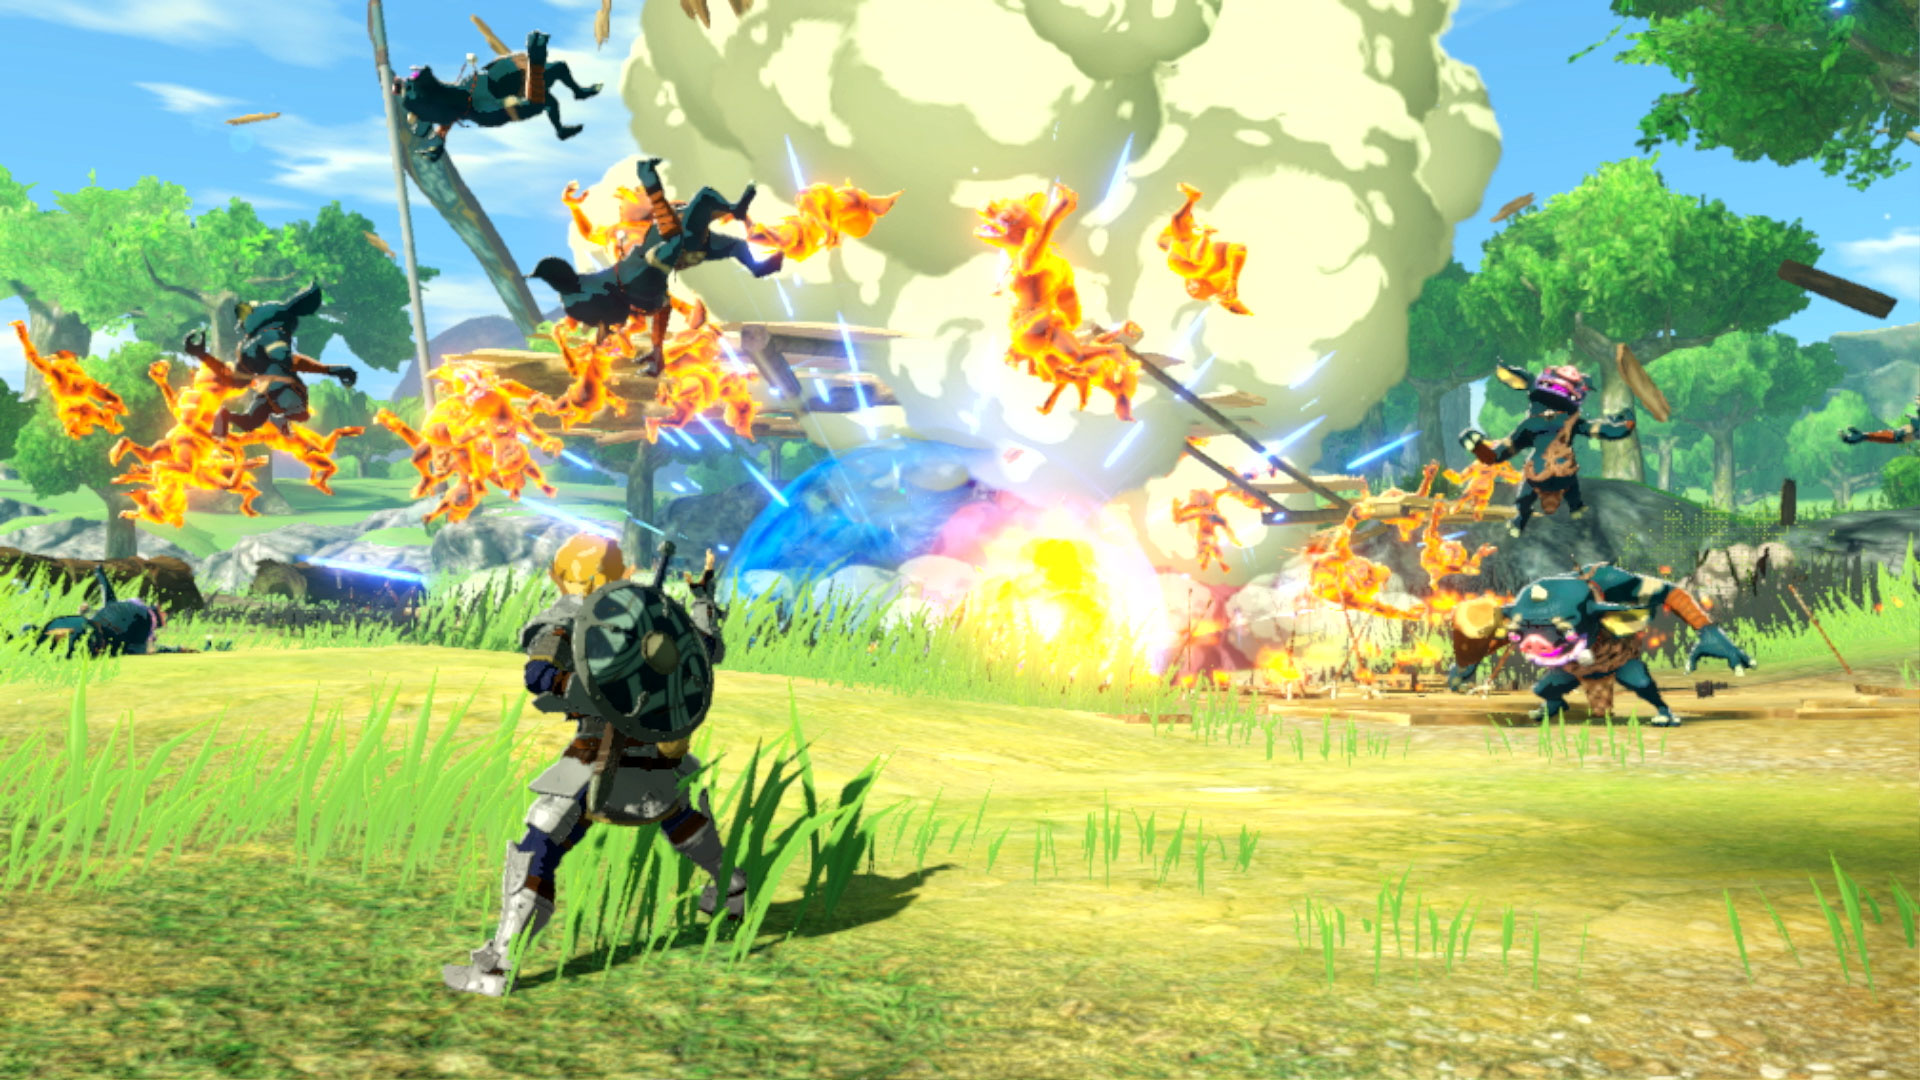 Nintendo S Hyrule Warriors Age Of Calamity Is A Prequel To Zelda Breath Of The Wild